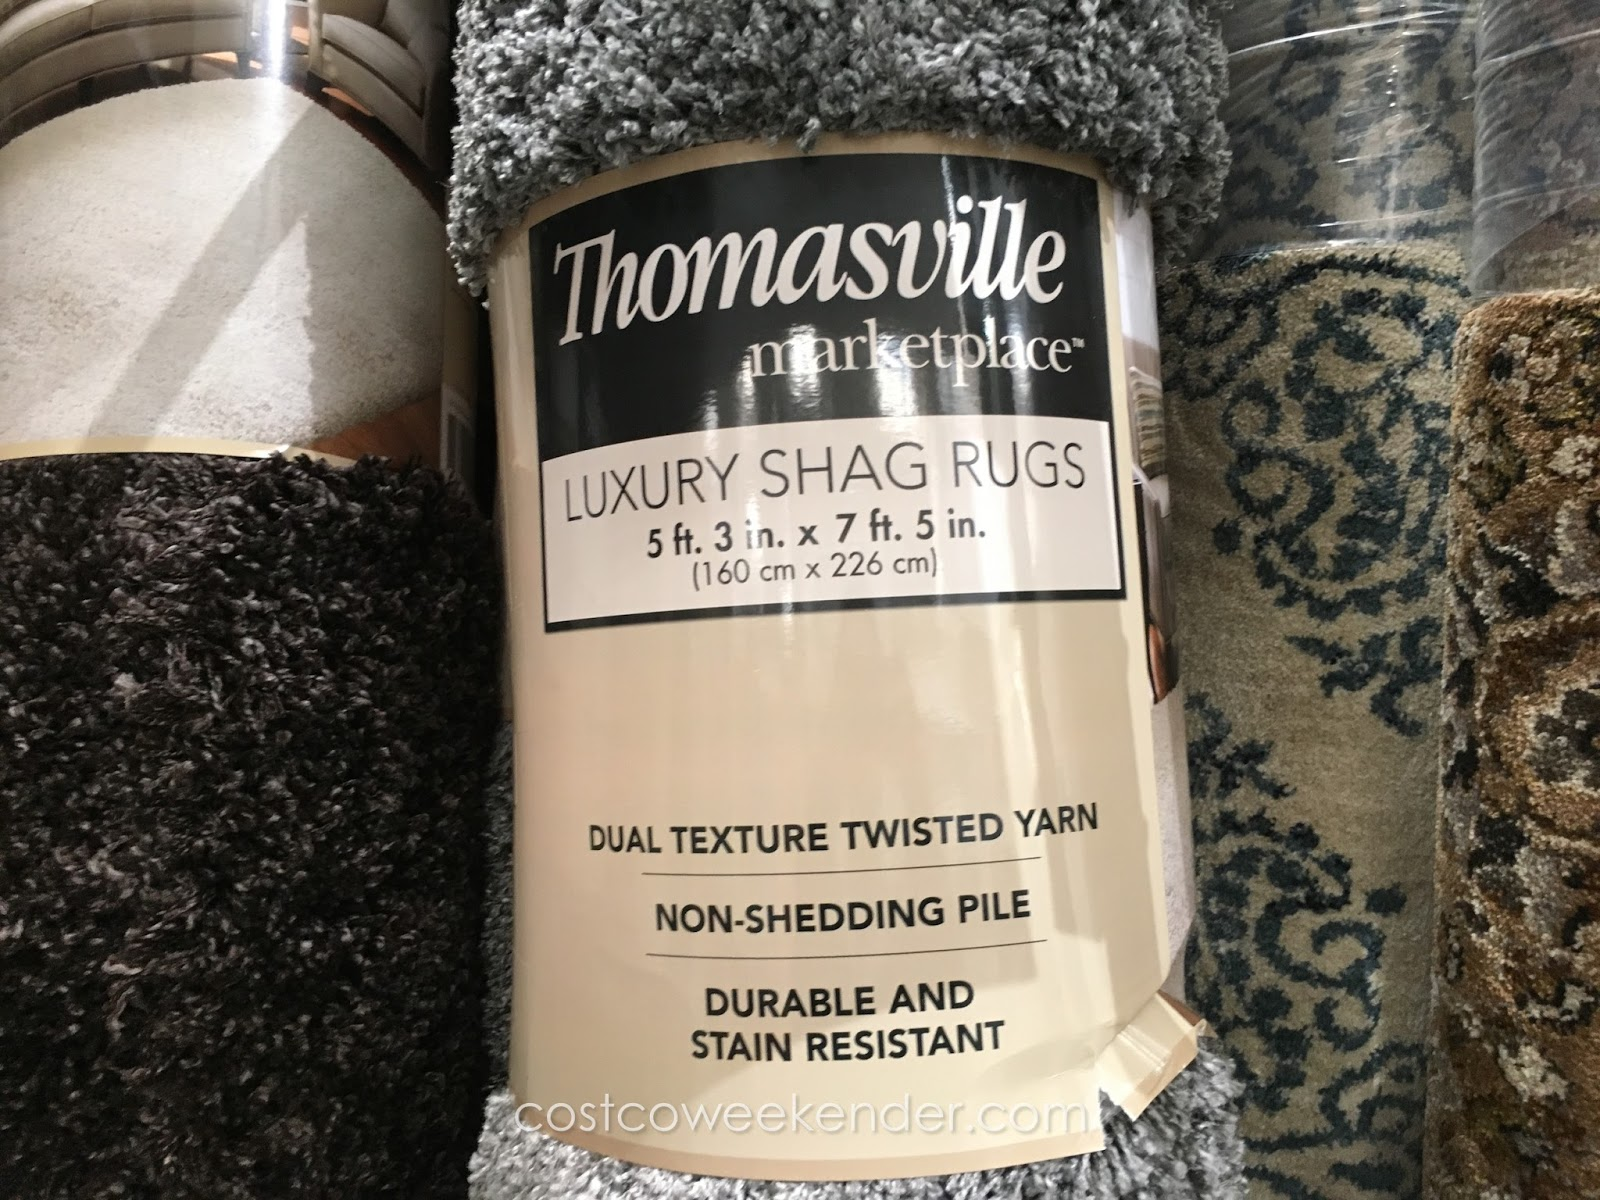 Thomasville Marketplace Luxury Shag Rug Costco Weekender